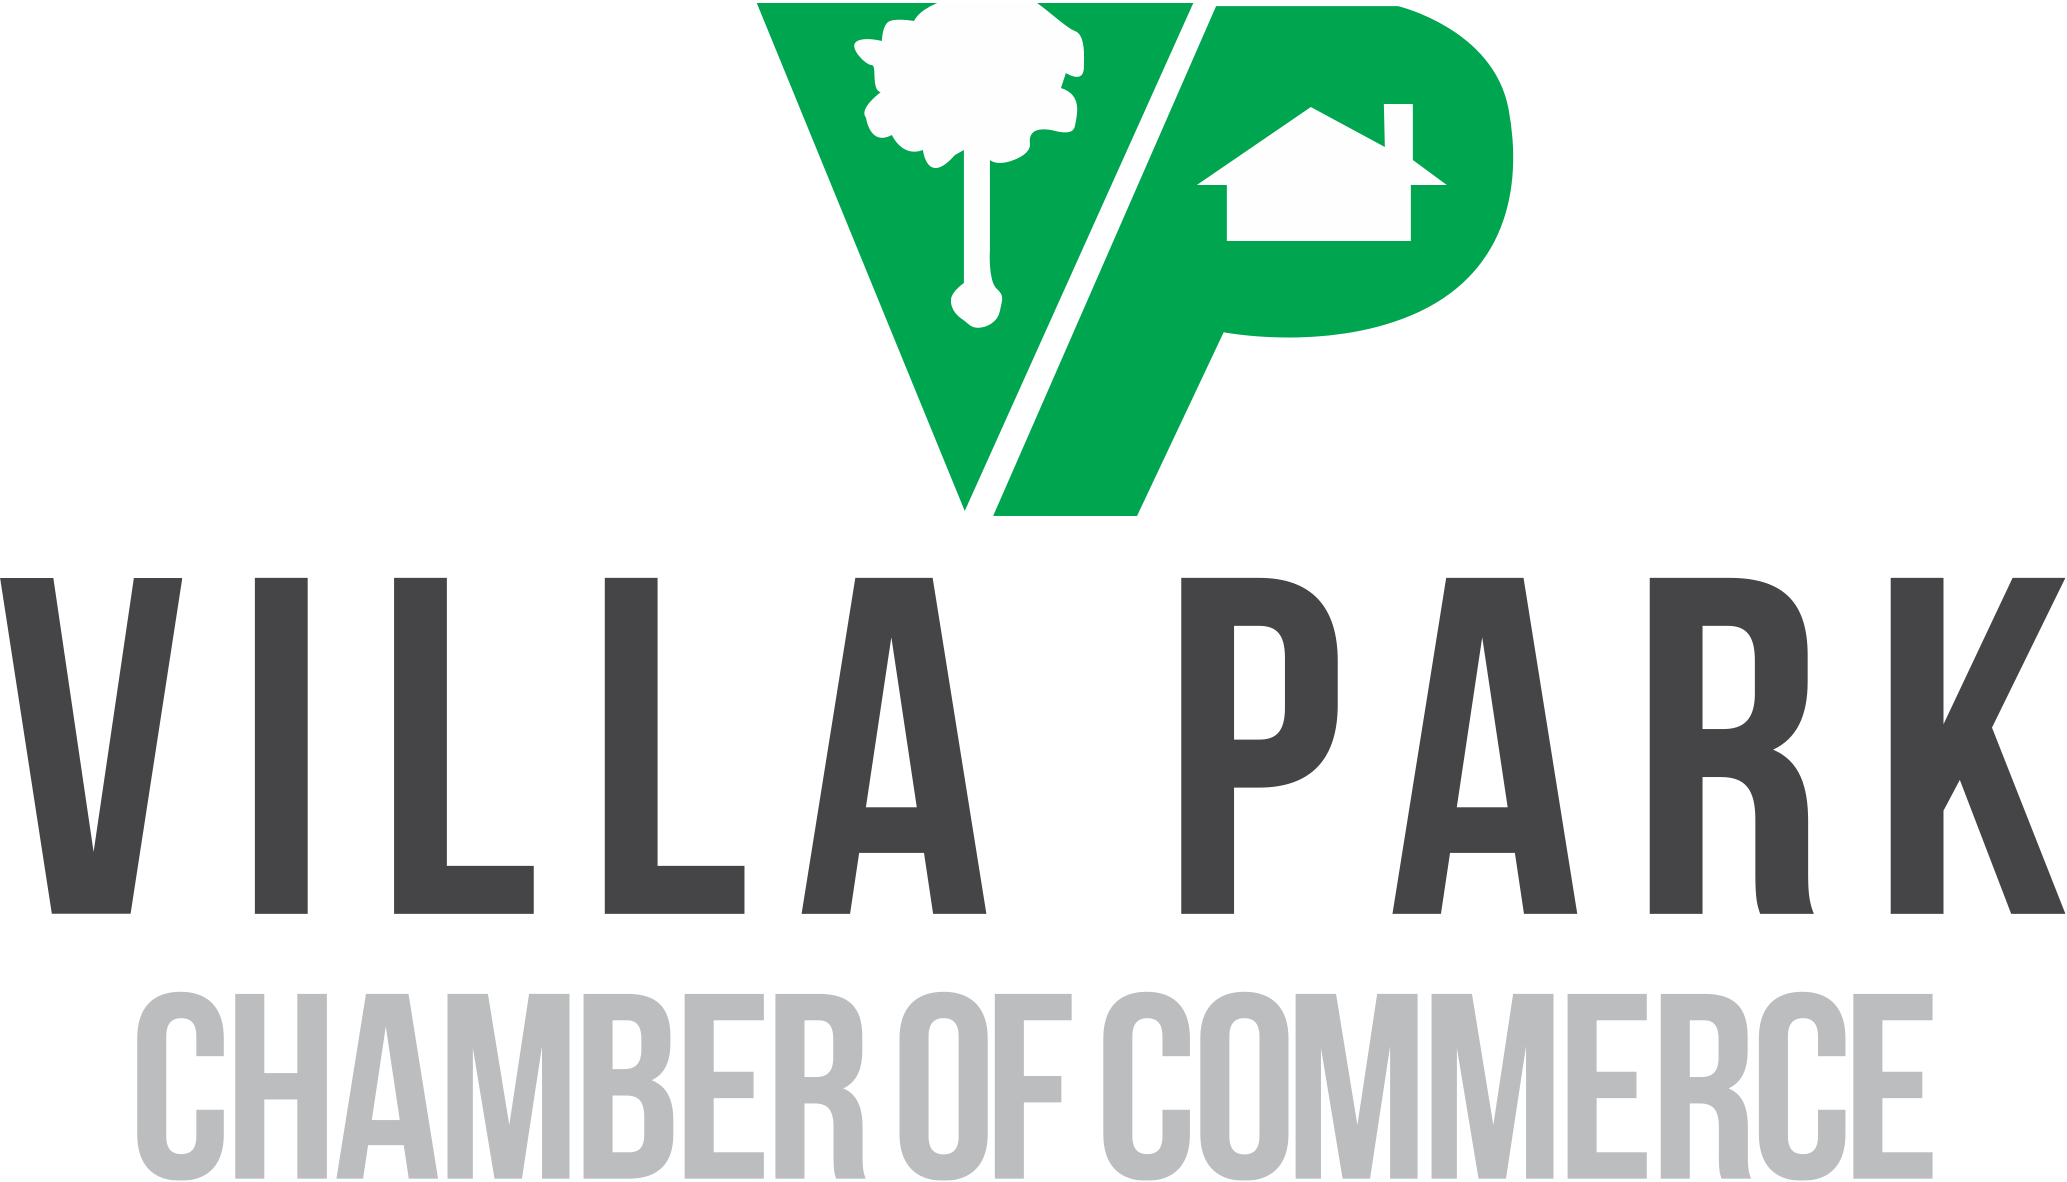 Villa Park Chamber of Commerce logo